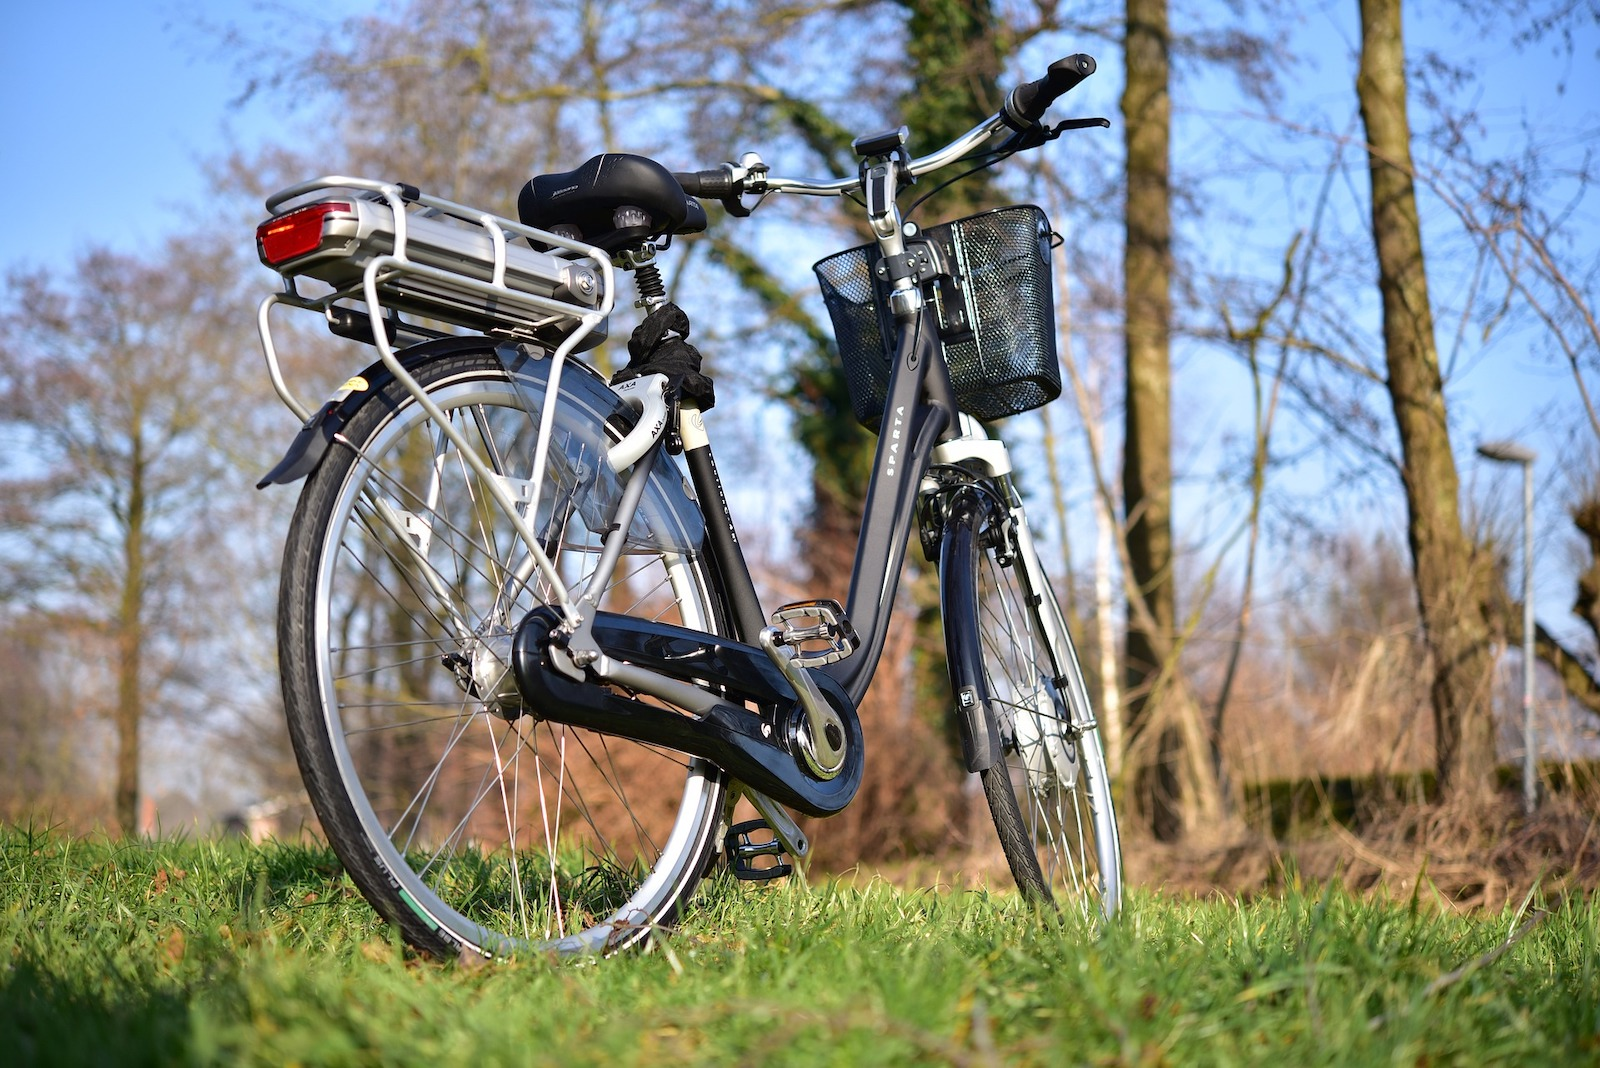 Increasing E-Bike Adoption Just 15 Percent Could Cut Emissions 12 Percent